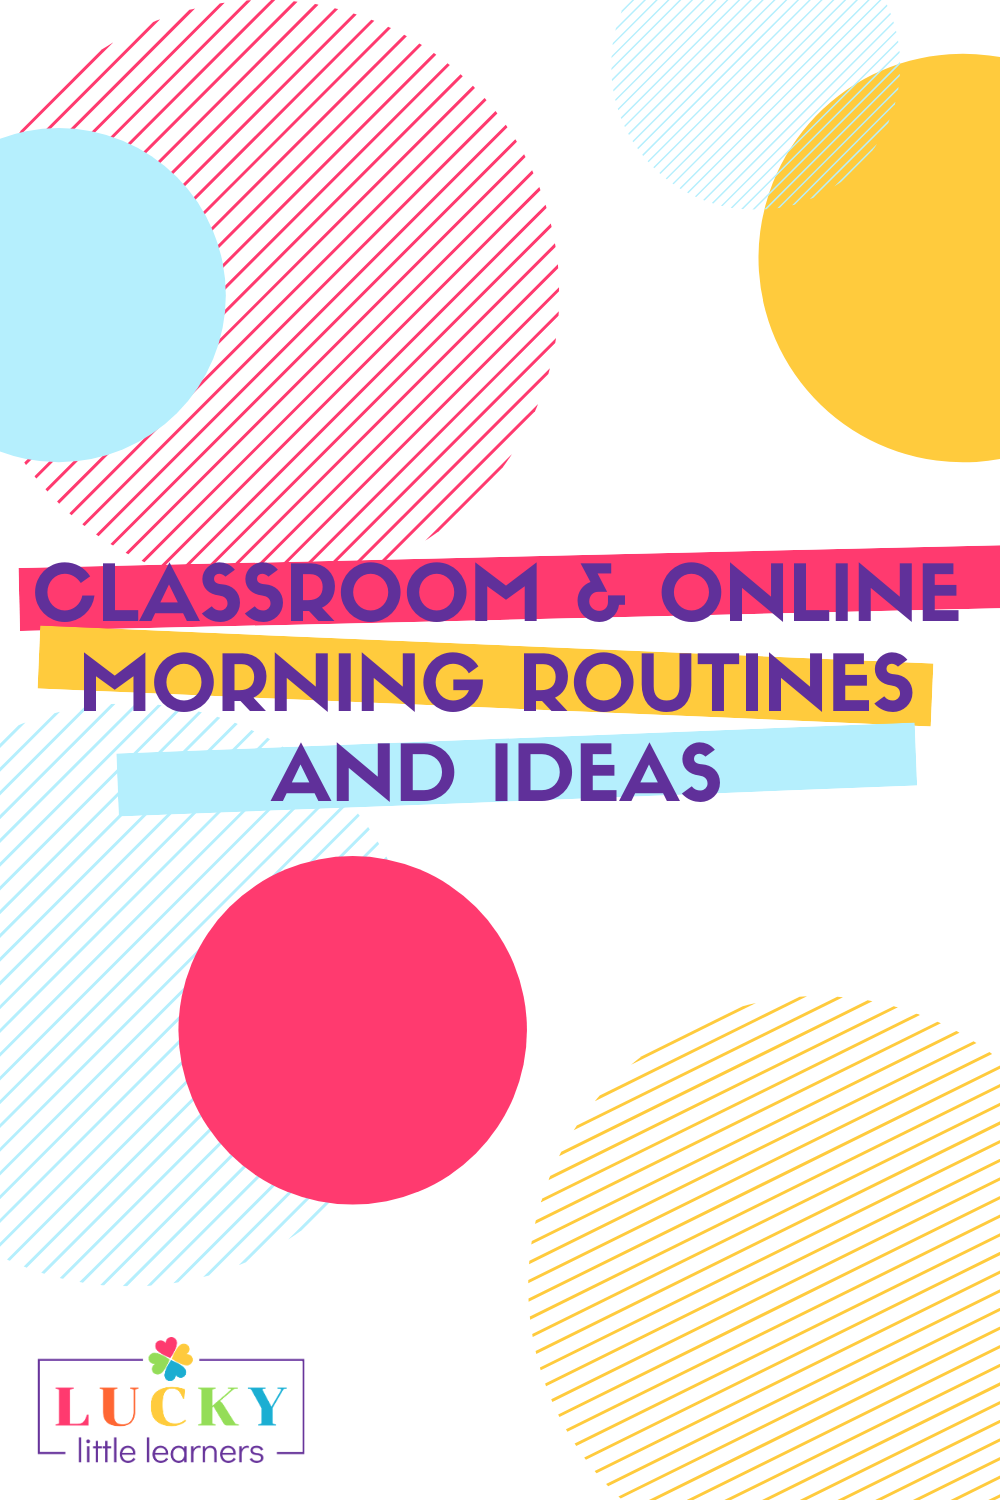 A classroom morning routine is going to be the key to starting the school day.  Routines provide students with a predictable structure that sets them up for success every single day.  Whether you are teaching in the classroom or online this year, we have gathered some morning routines and ideas for you to use with your students.